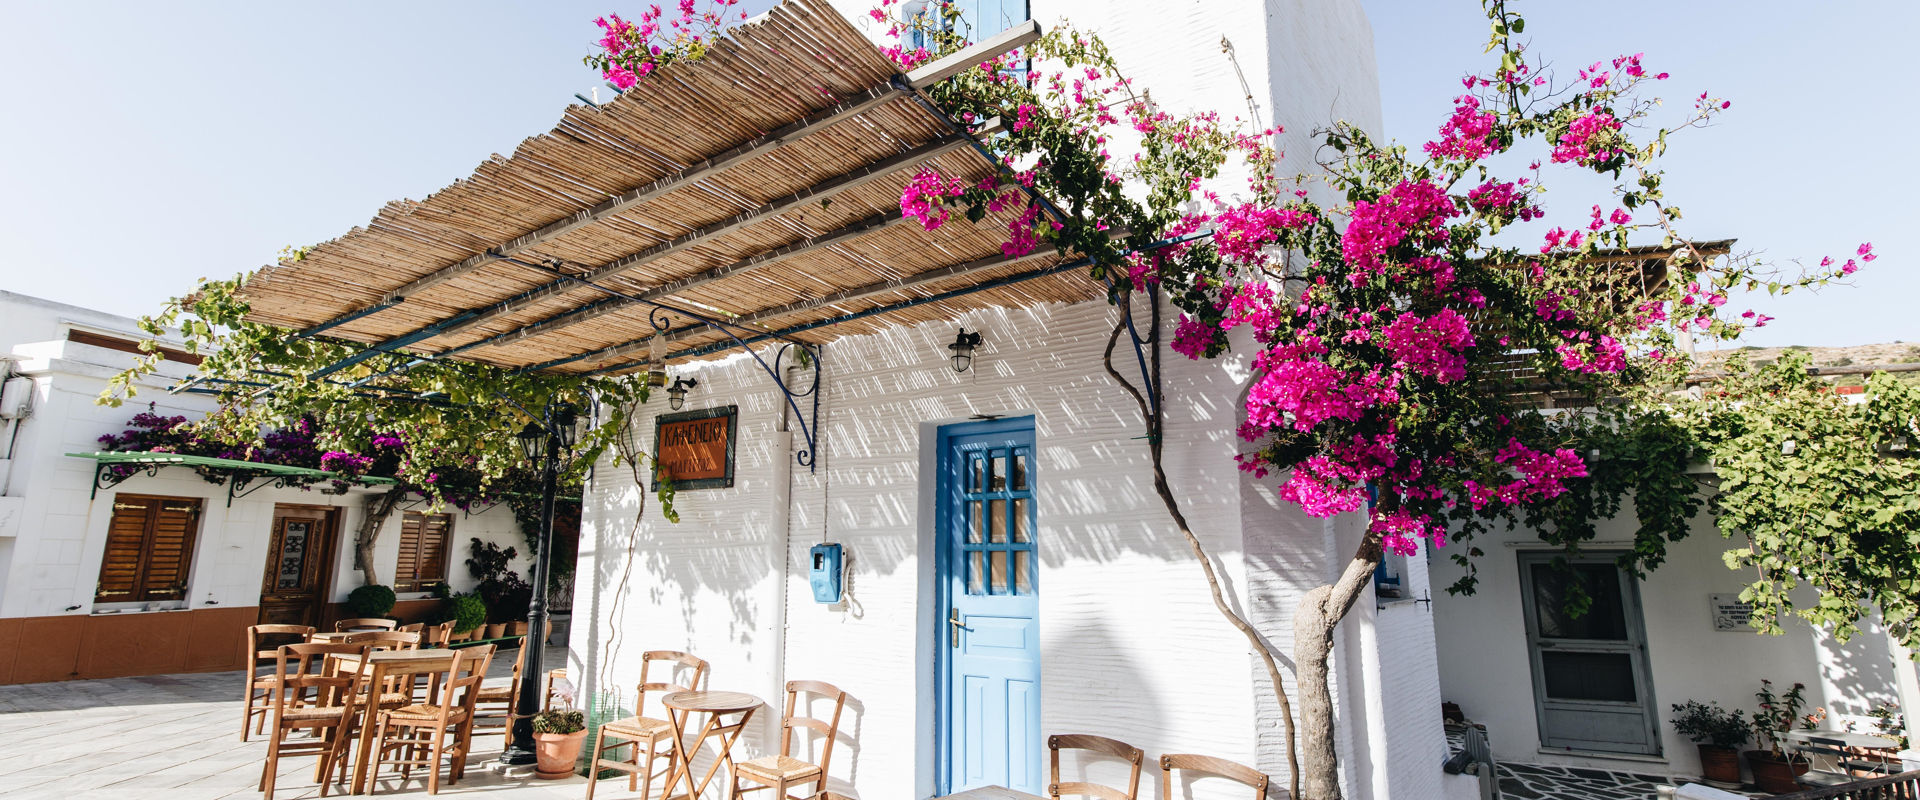 The fantastic vibe of Paros blending style and tradition